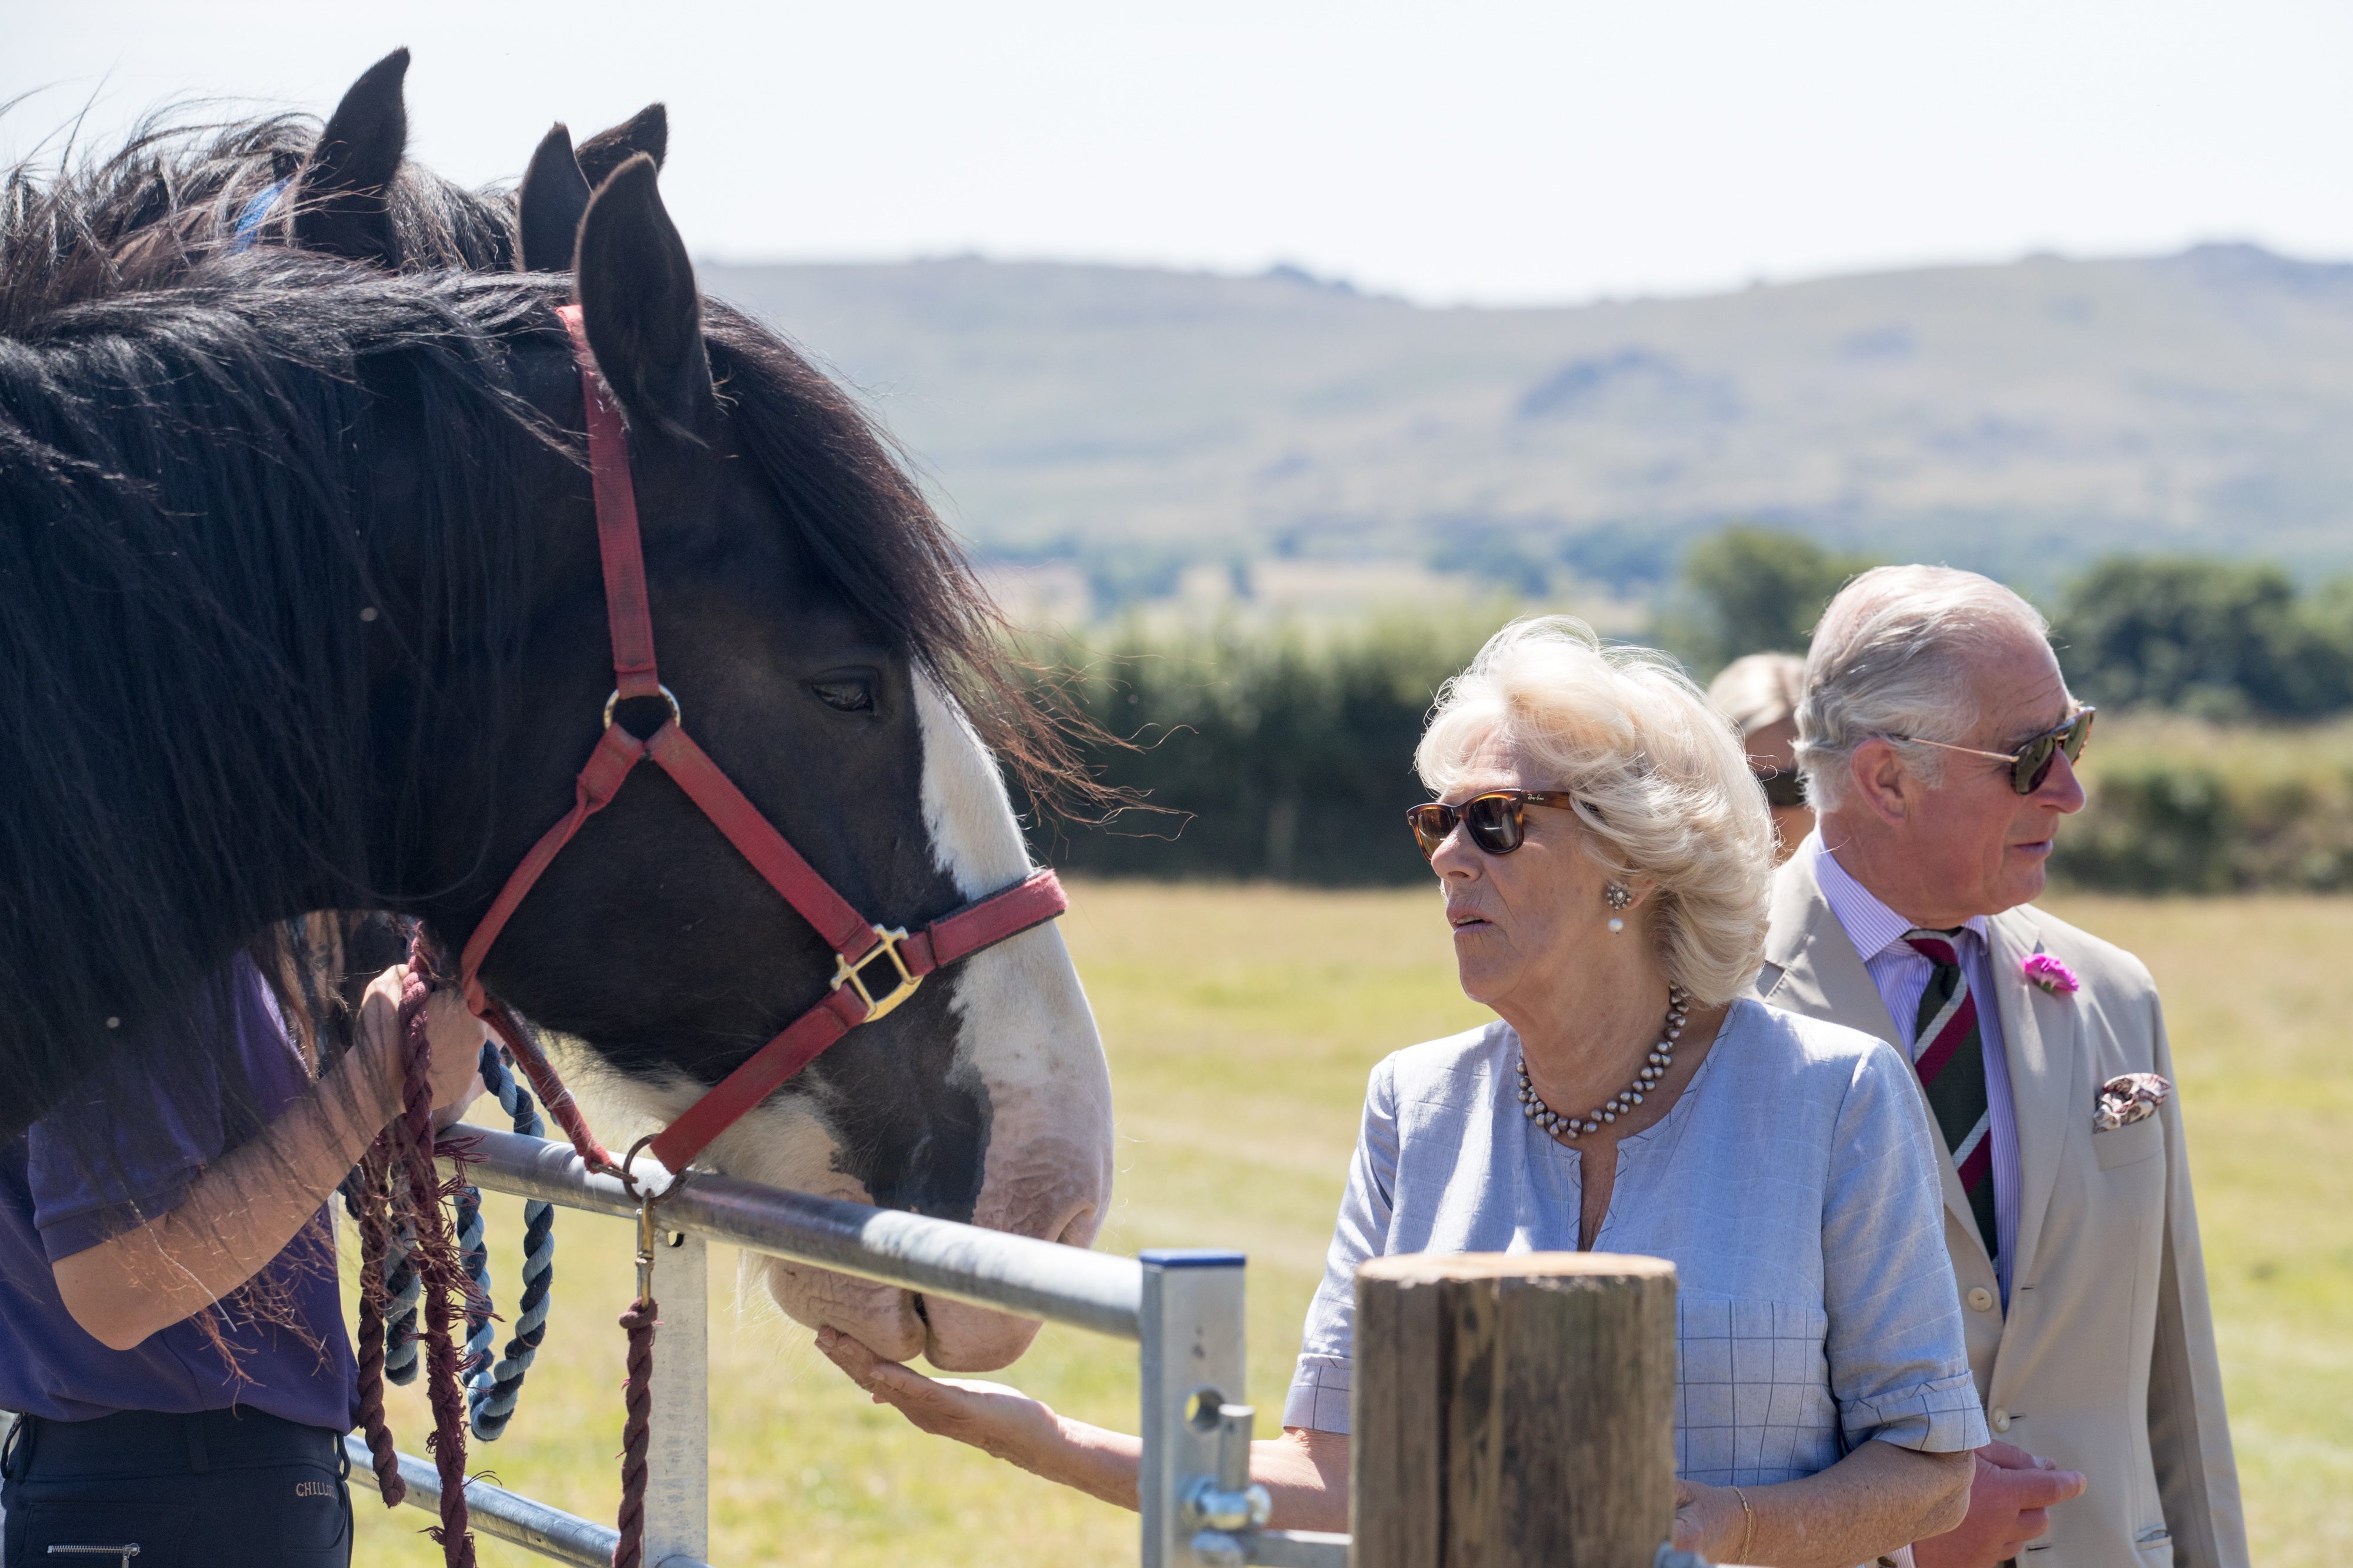 Camilla, the Duchess of Cornwall, and Prince Charles, Prince of Wales greet horses as they visit Dyfed Shire Horse Farm in Eglwyswrw on July 3, 2018 in Pembrokeshire, Wales. Dyfed Shire Horse Farm is a family run enterprise that has been breeding the Dyfed bloodline of Shire Horses for almost 40 years, on a farm that has been in the family since 1849.